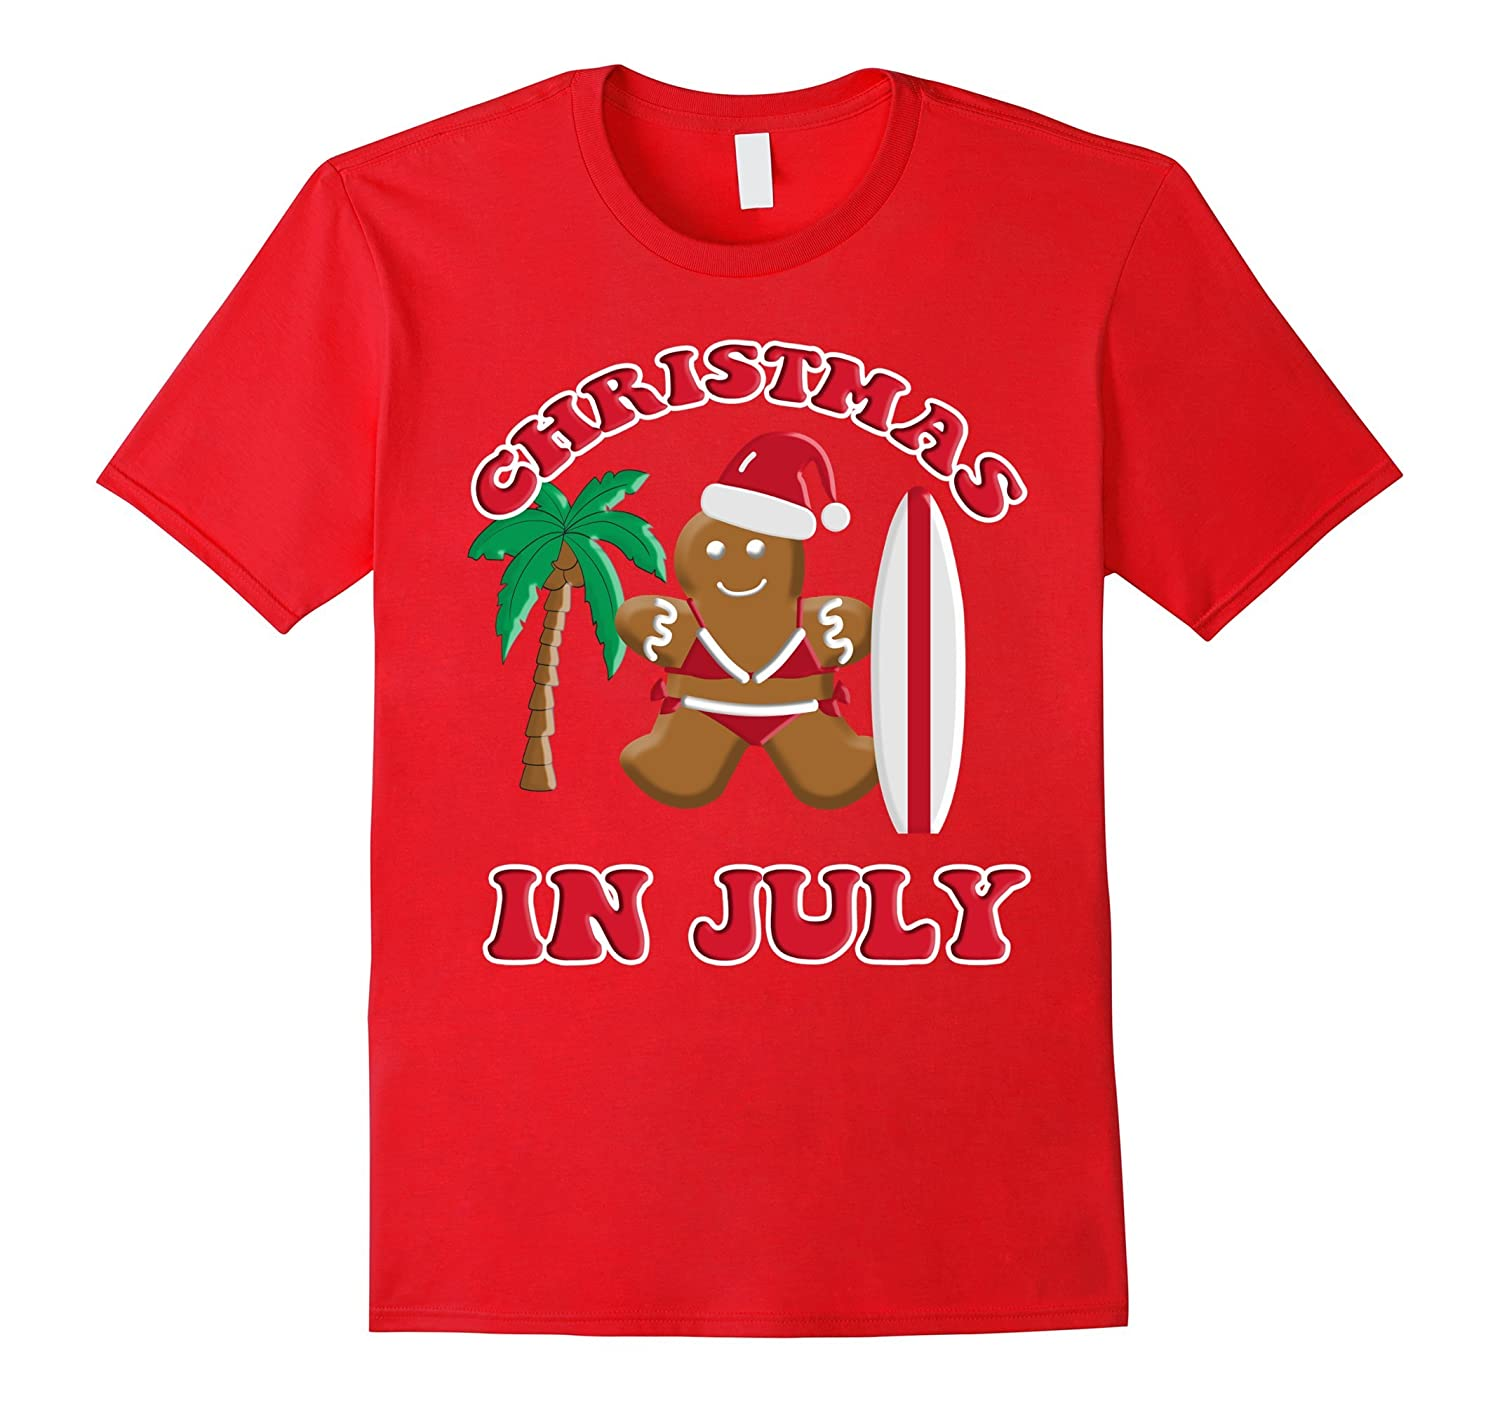 Christmas In July Gingerbread Cookie Bikini Surfboard Tee